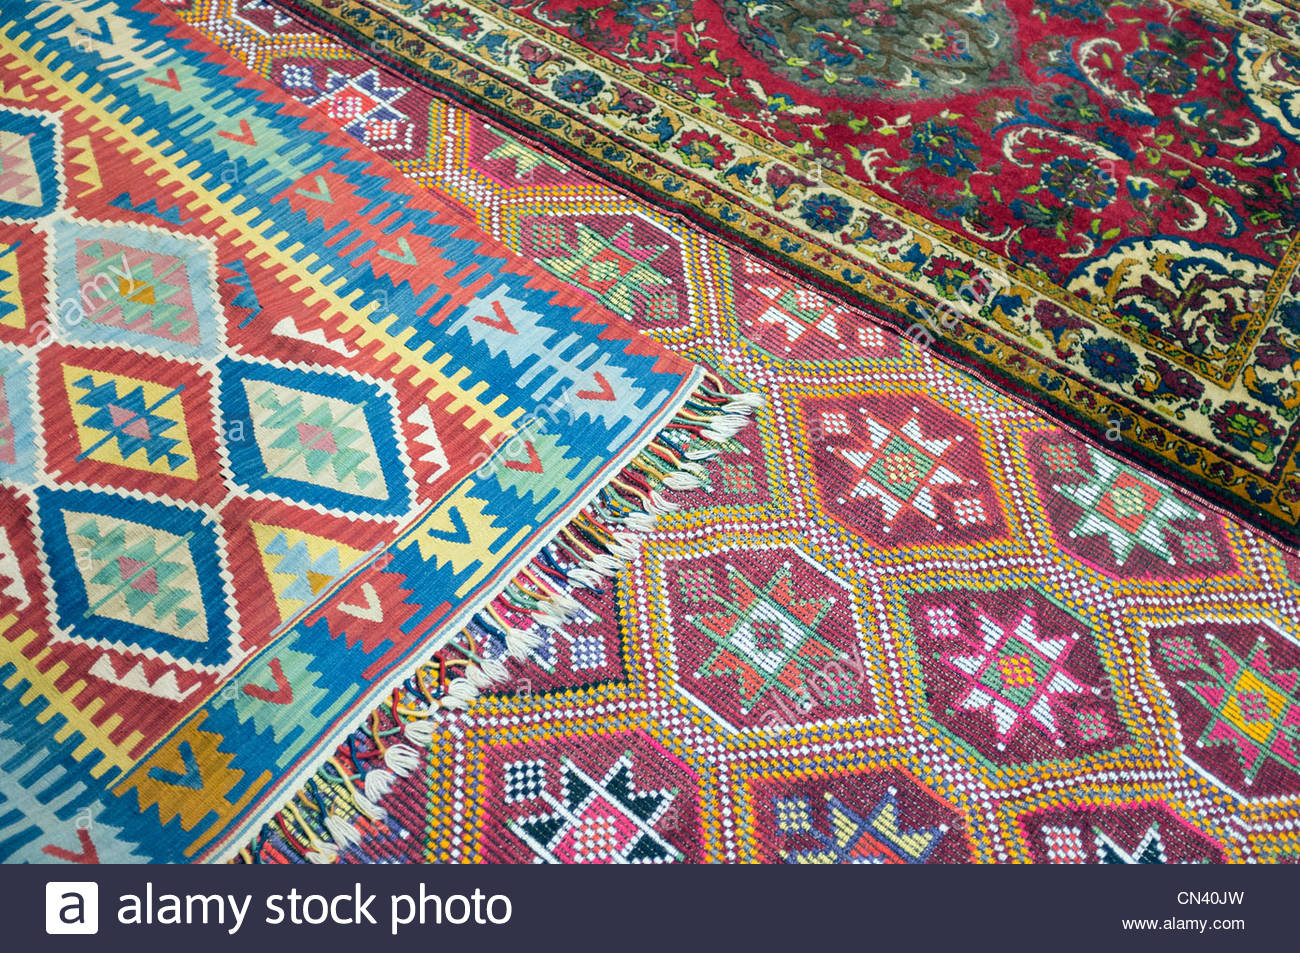 carpets stockfotos carpets bilder alamy. Black Bedroom Furniture Sets. Home Design Ideas